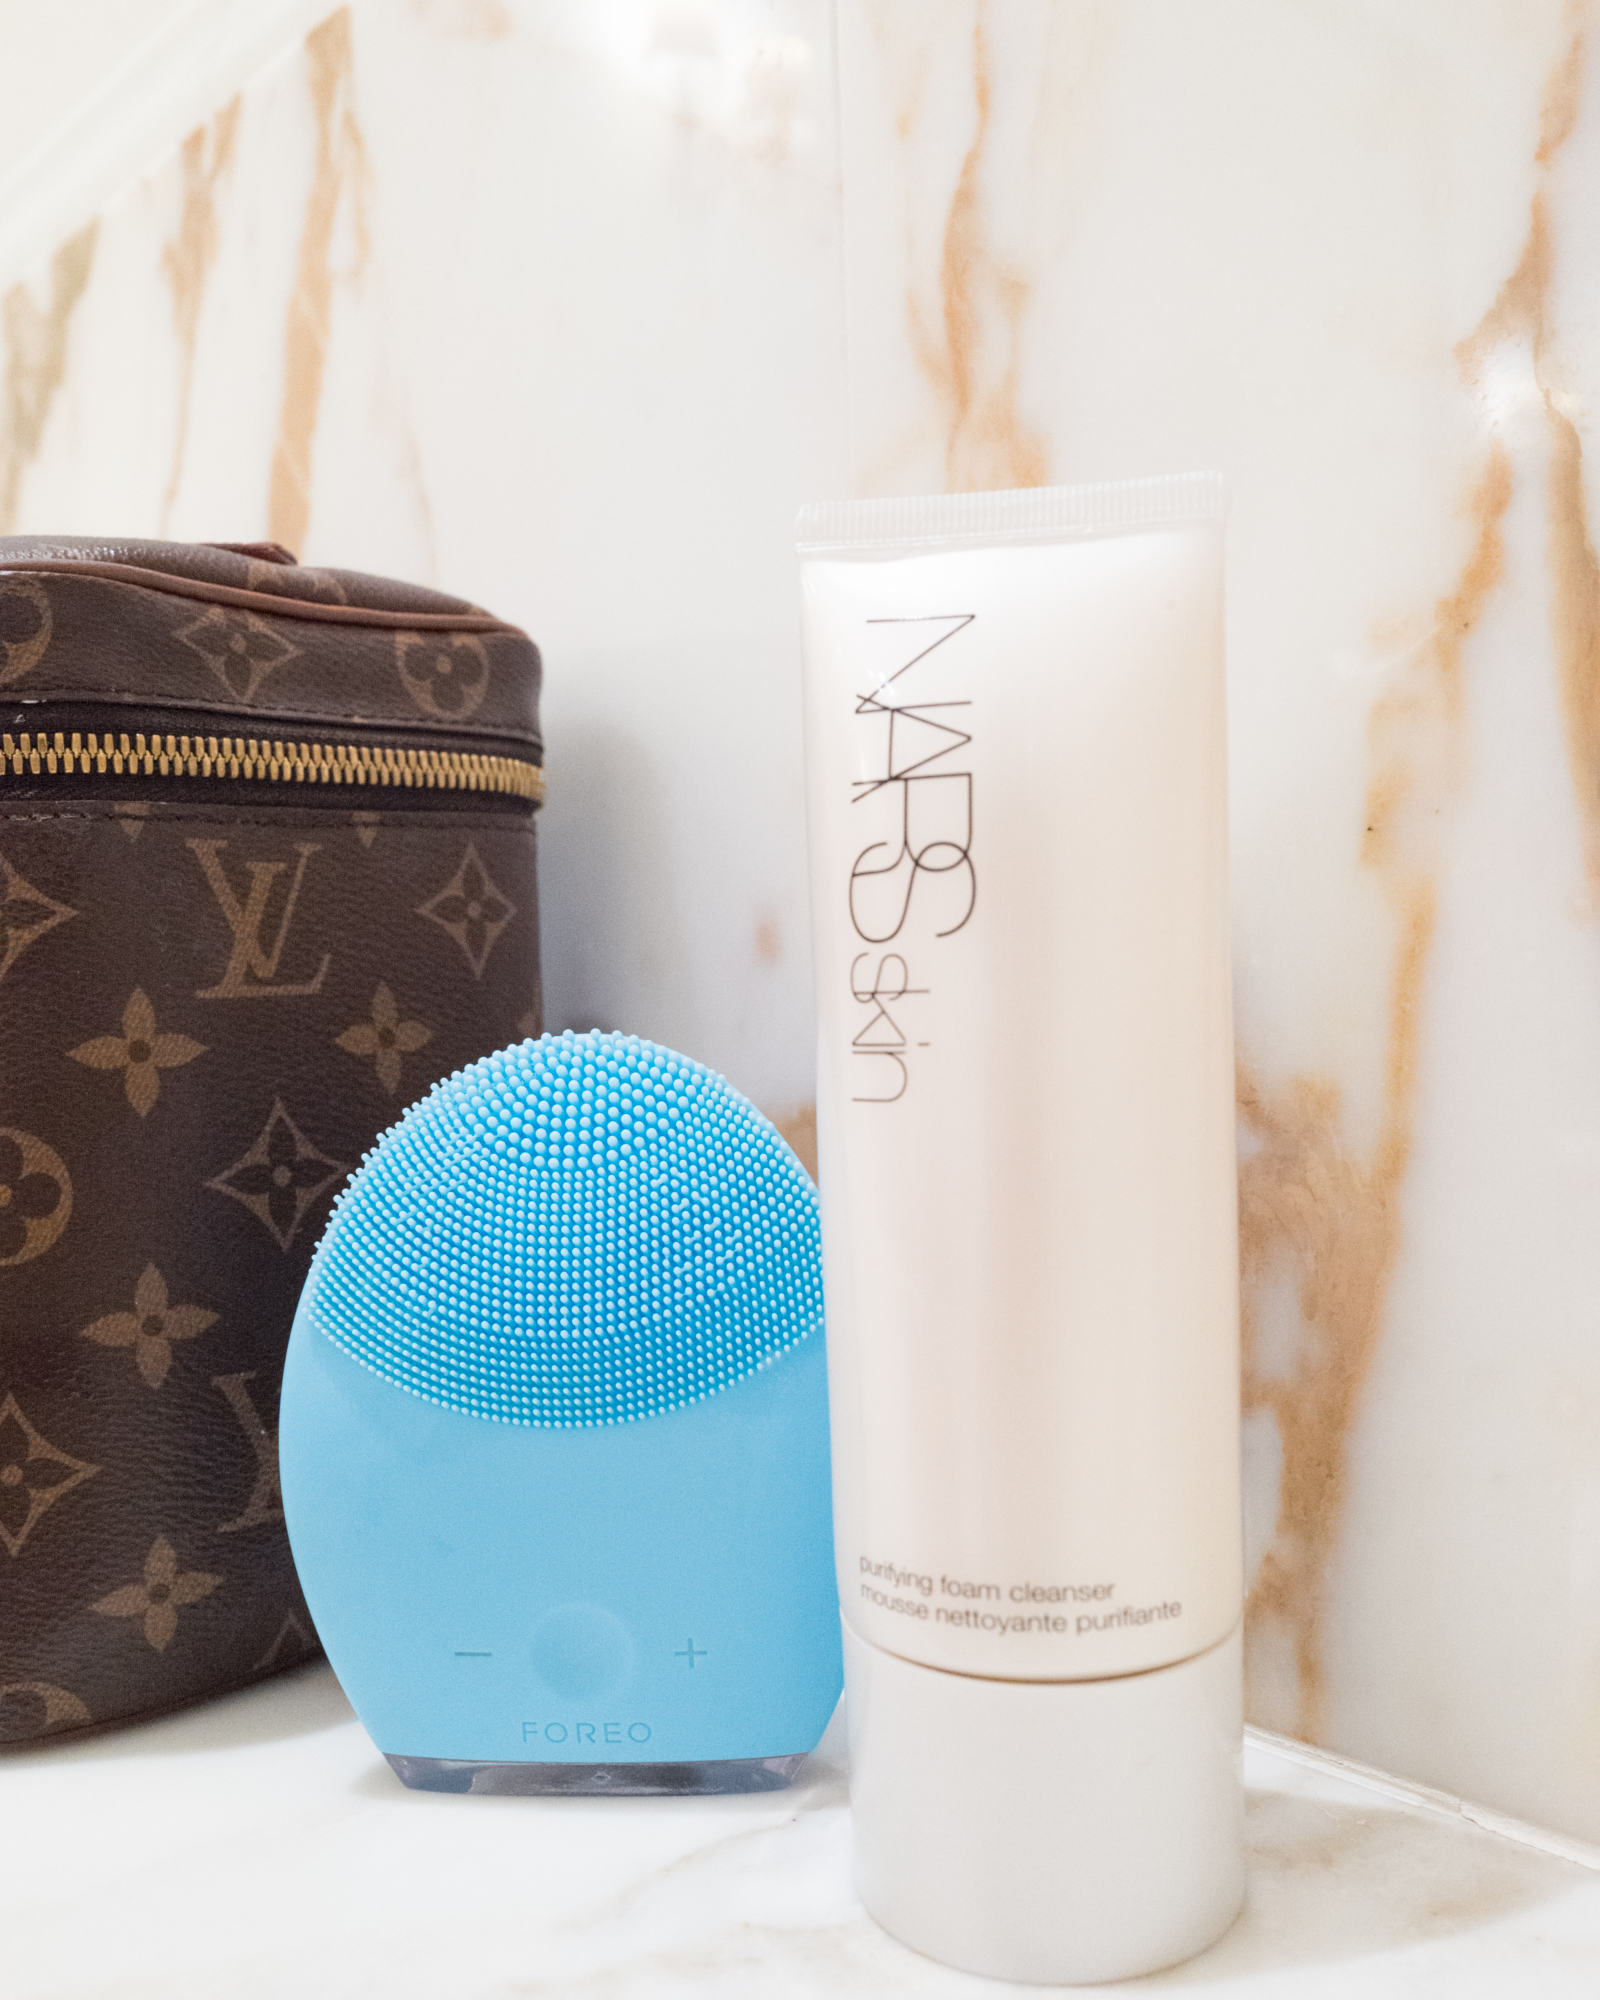 LUNA 2 facial cleansing brush